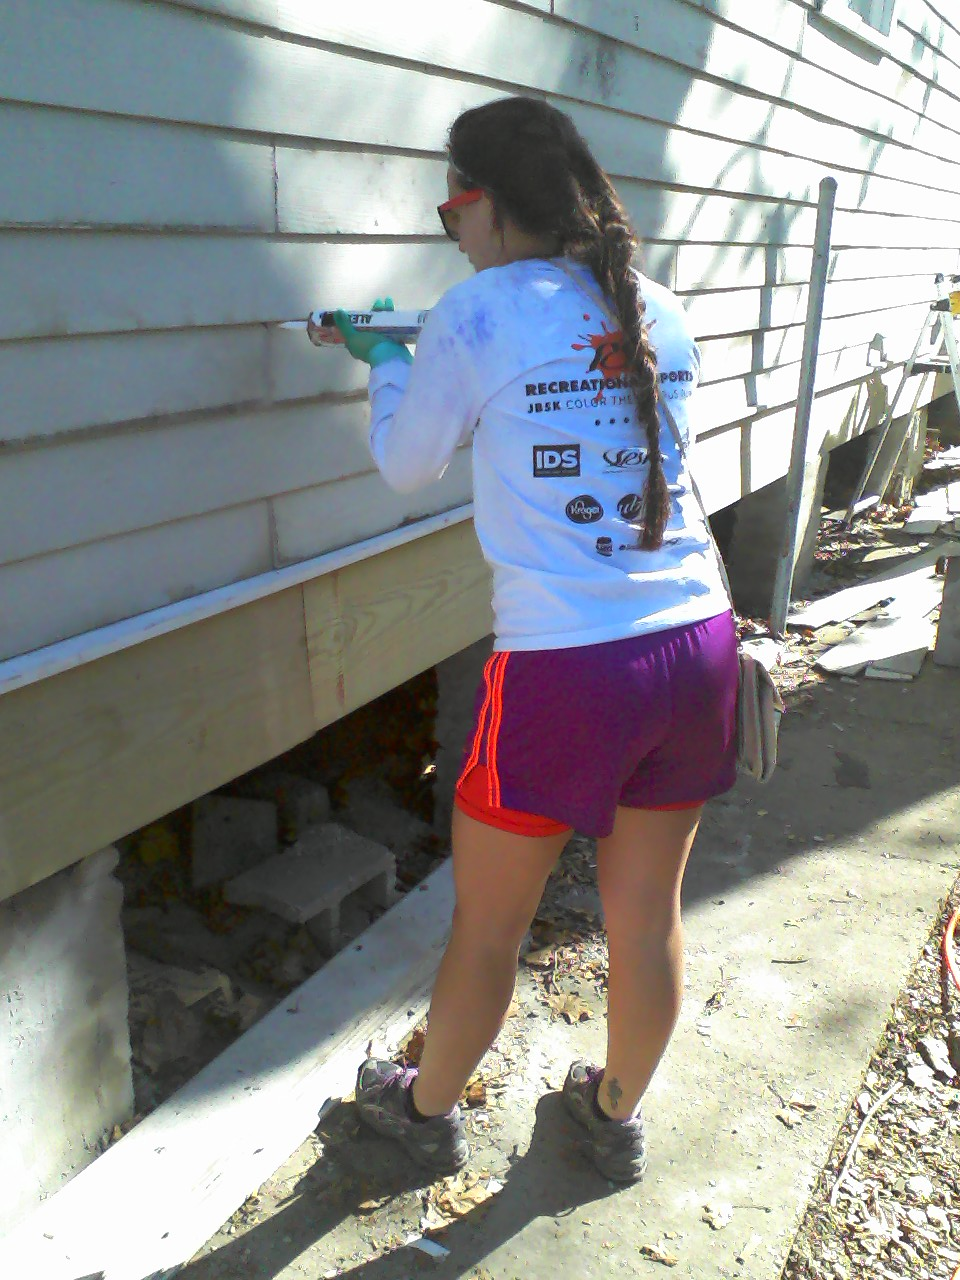 Wielding a mean caulk gun.